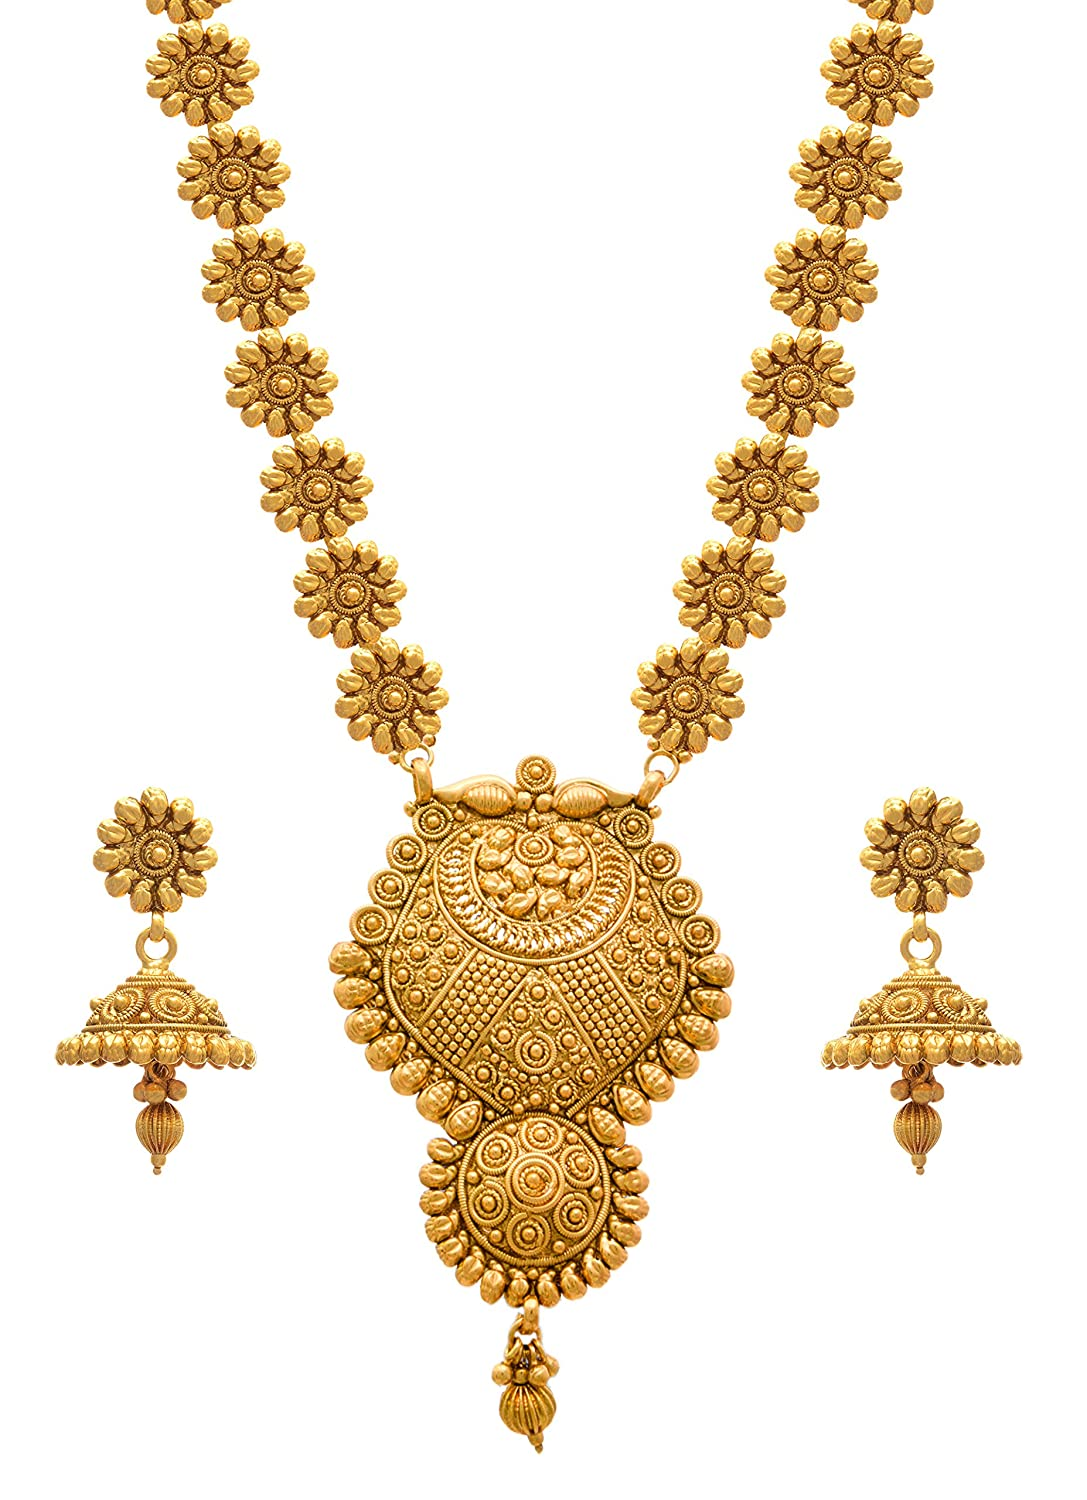 buy american plated gold prices zeneme earrings dp necklace in online and store amazon with jewellery low for india diamond goldplated women girls at